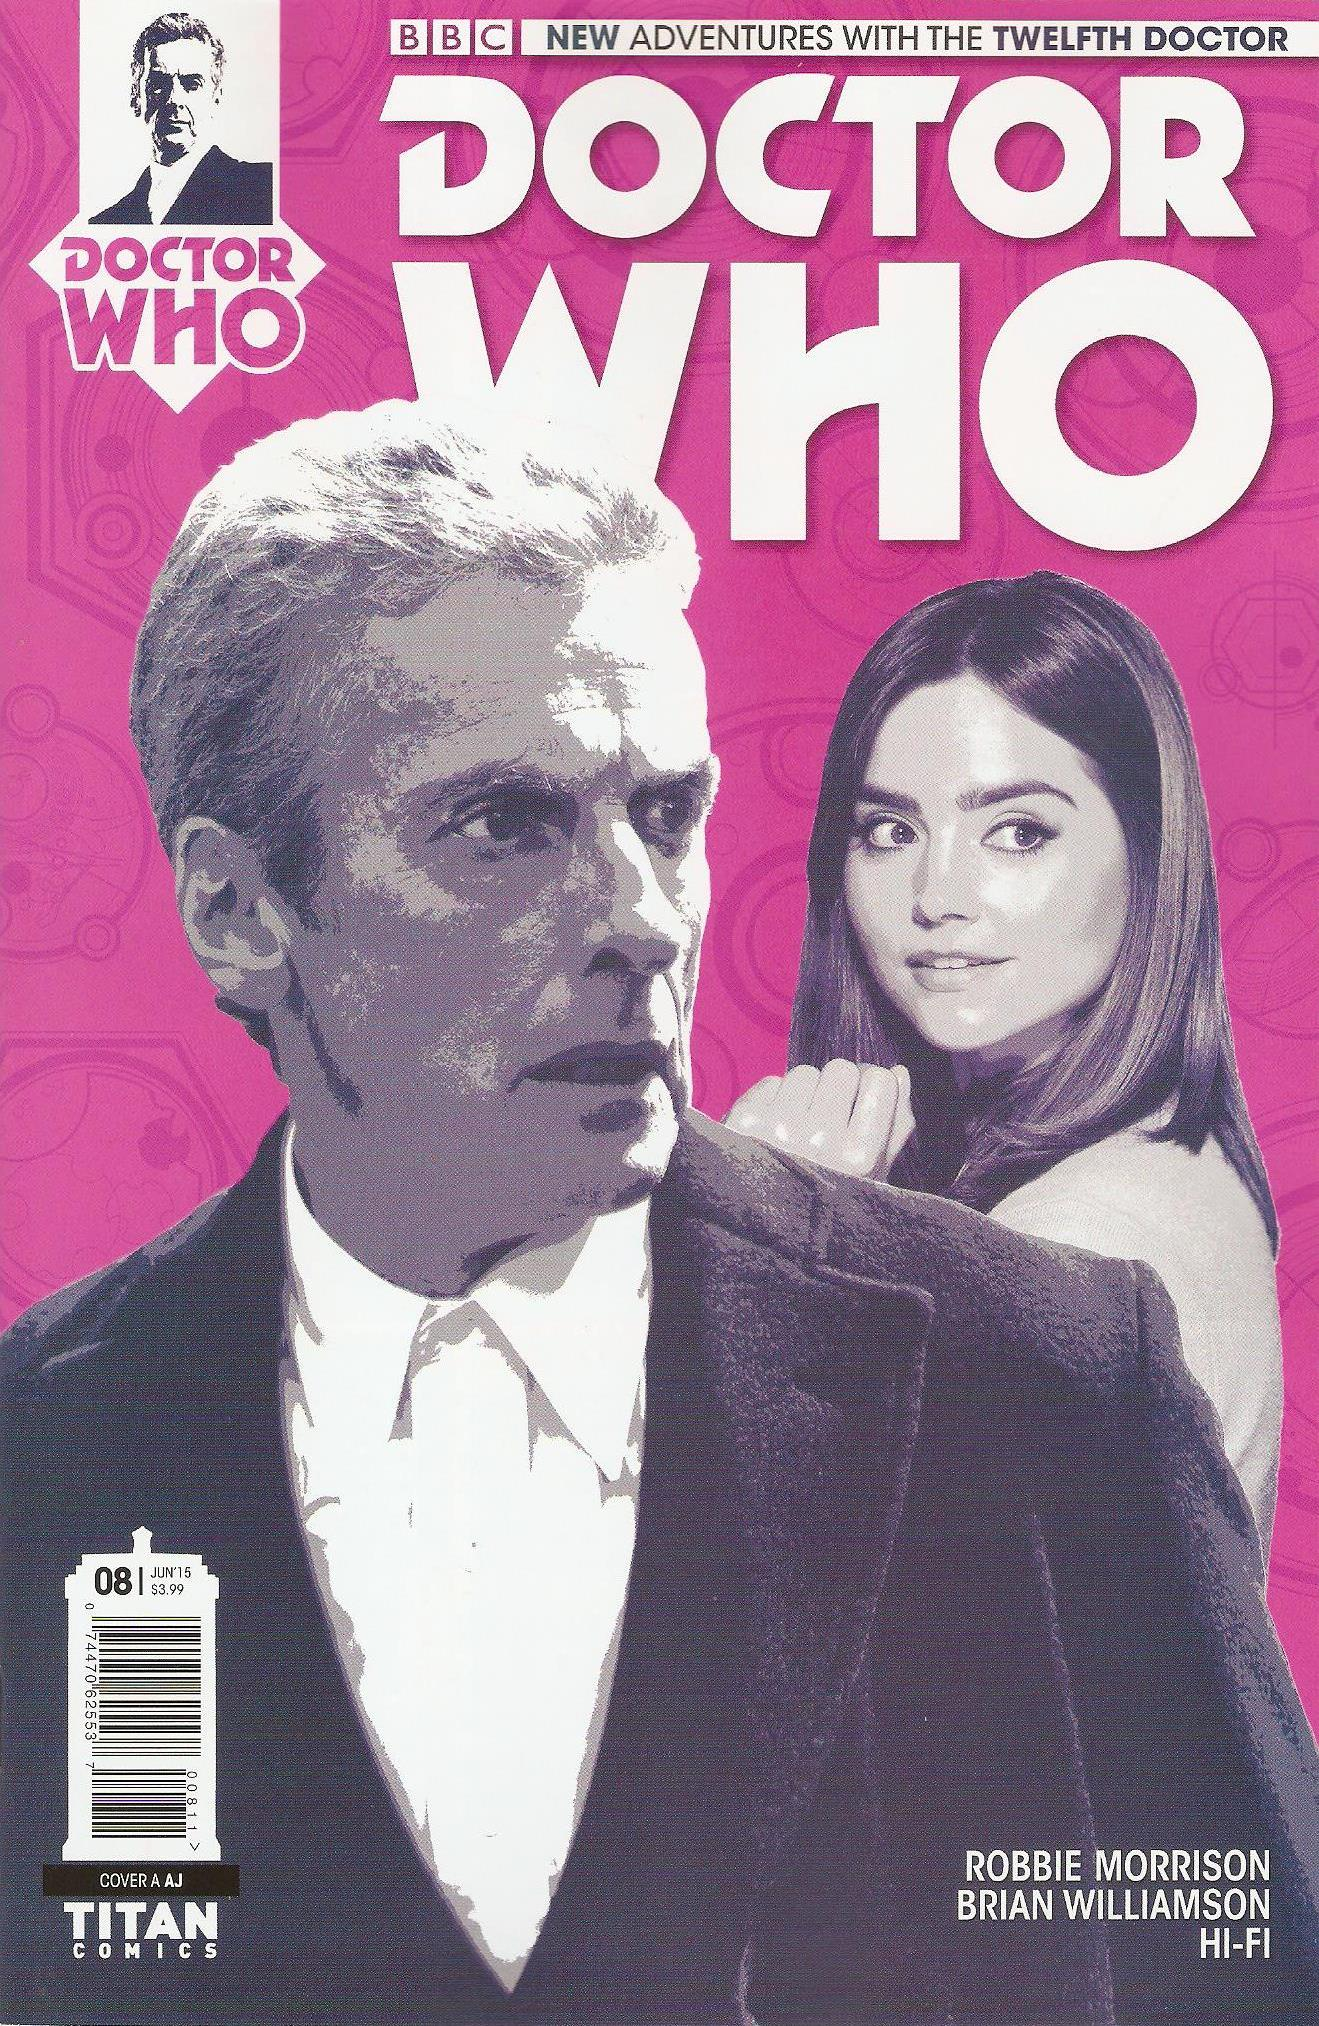 Twelfth doctor issue 8a